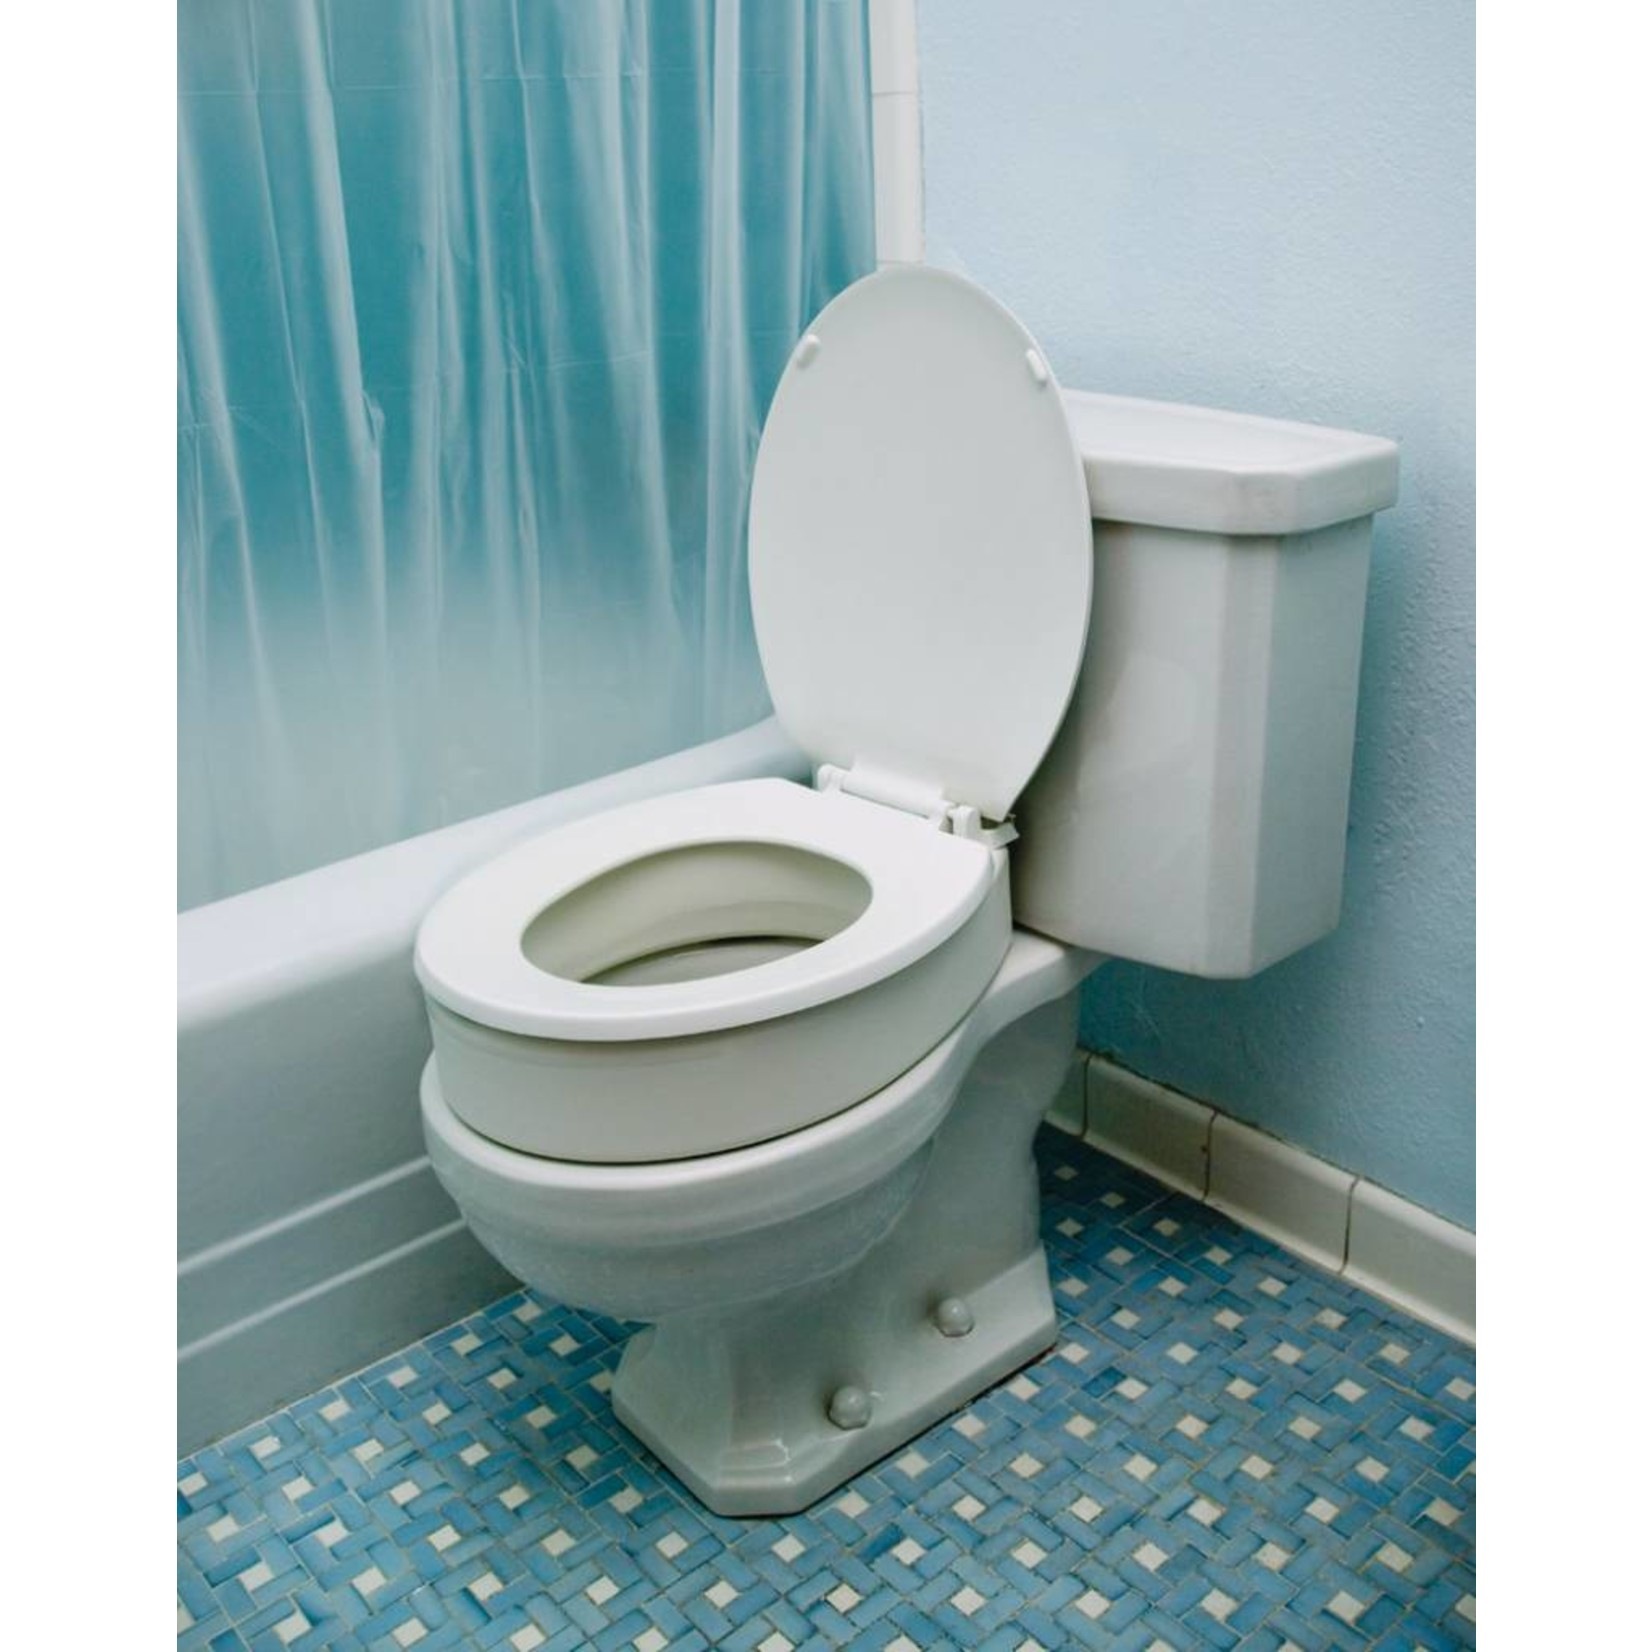 Essential Medical TOILET SEAT RISER ELONGATED